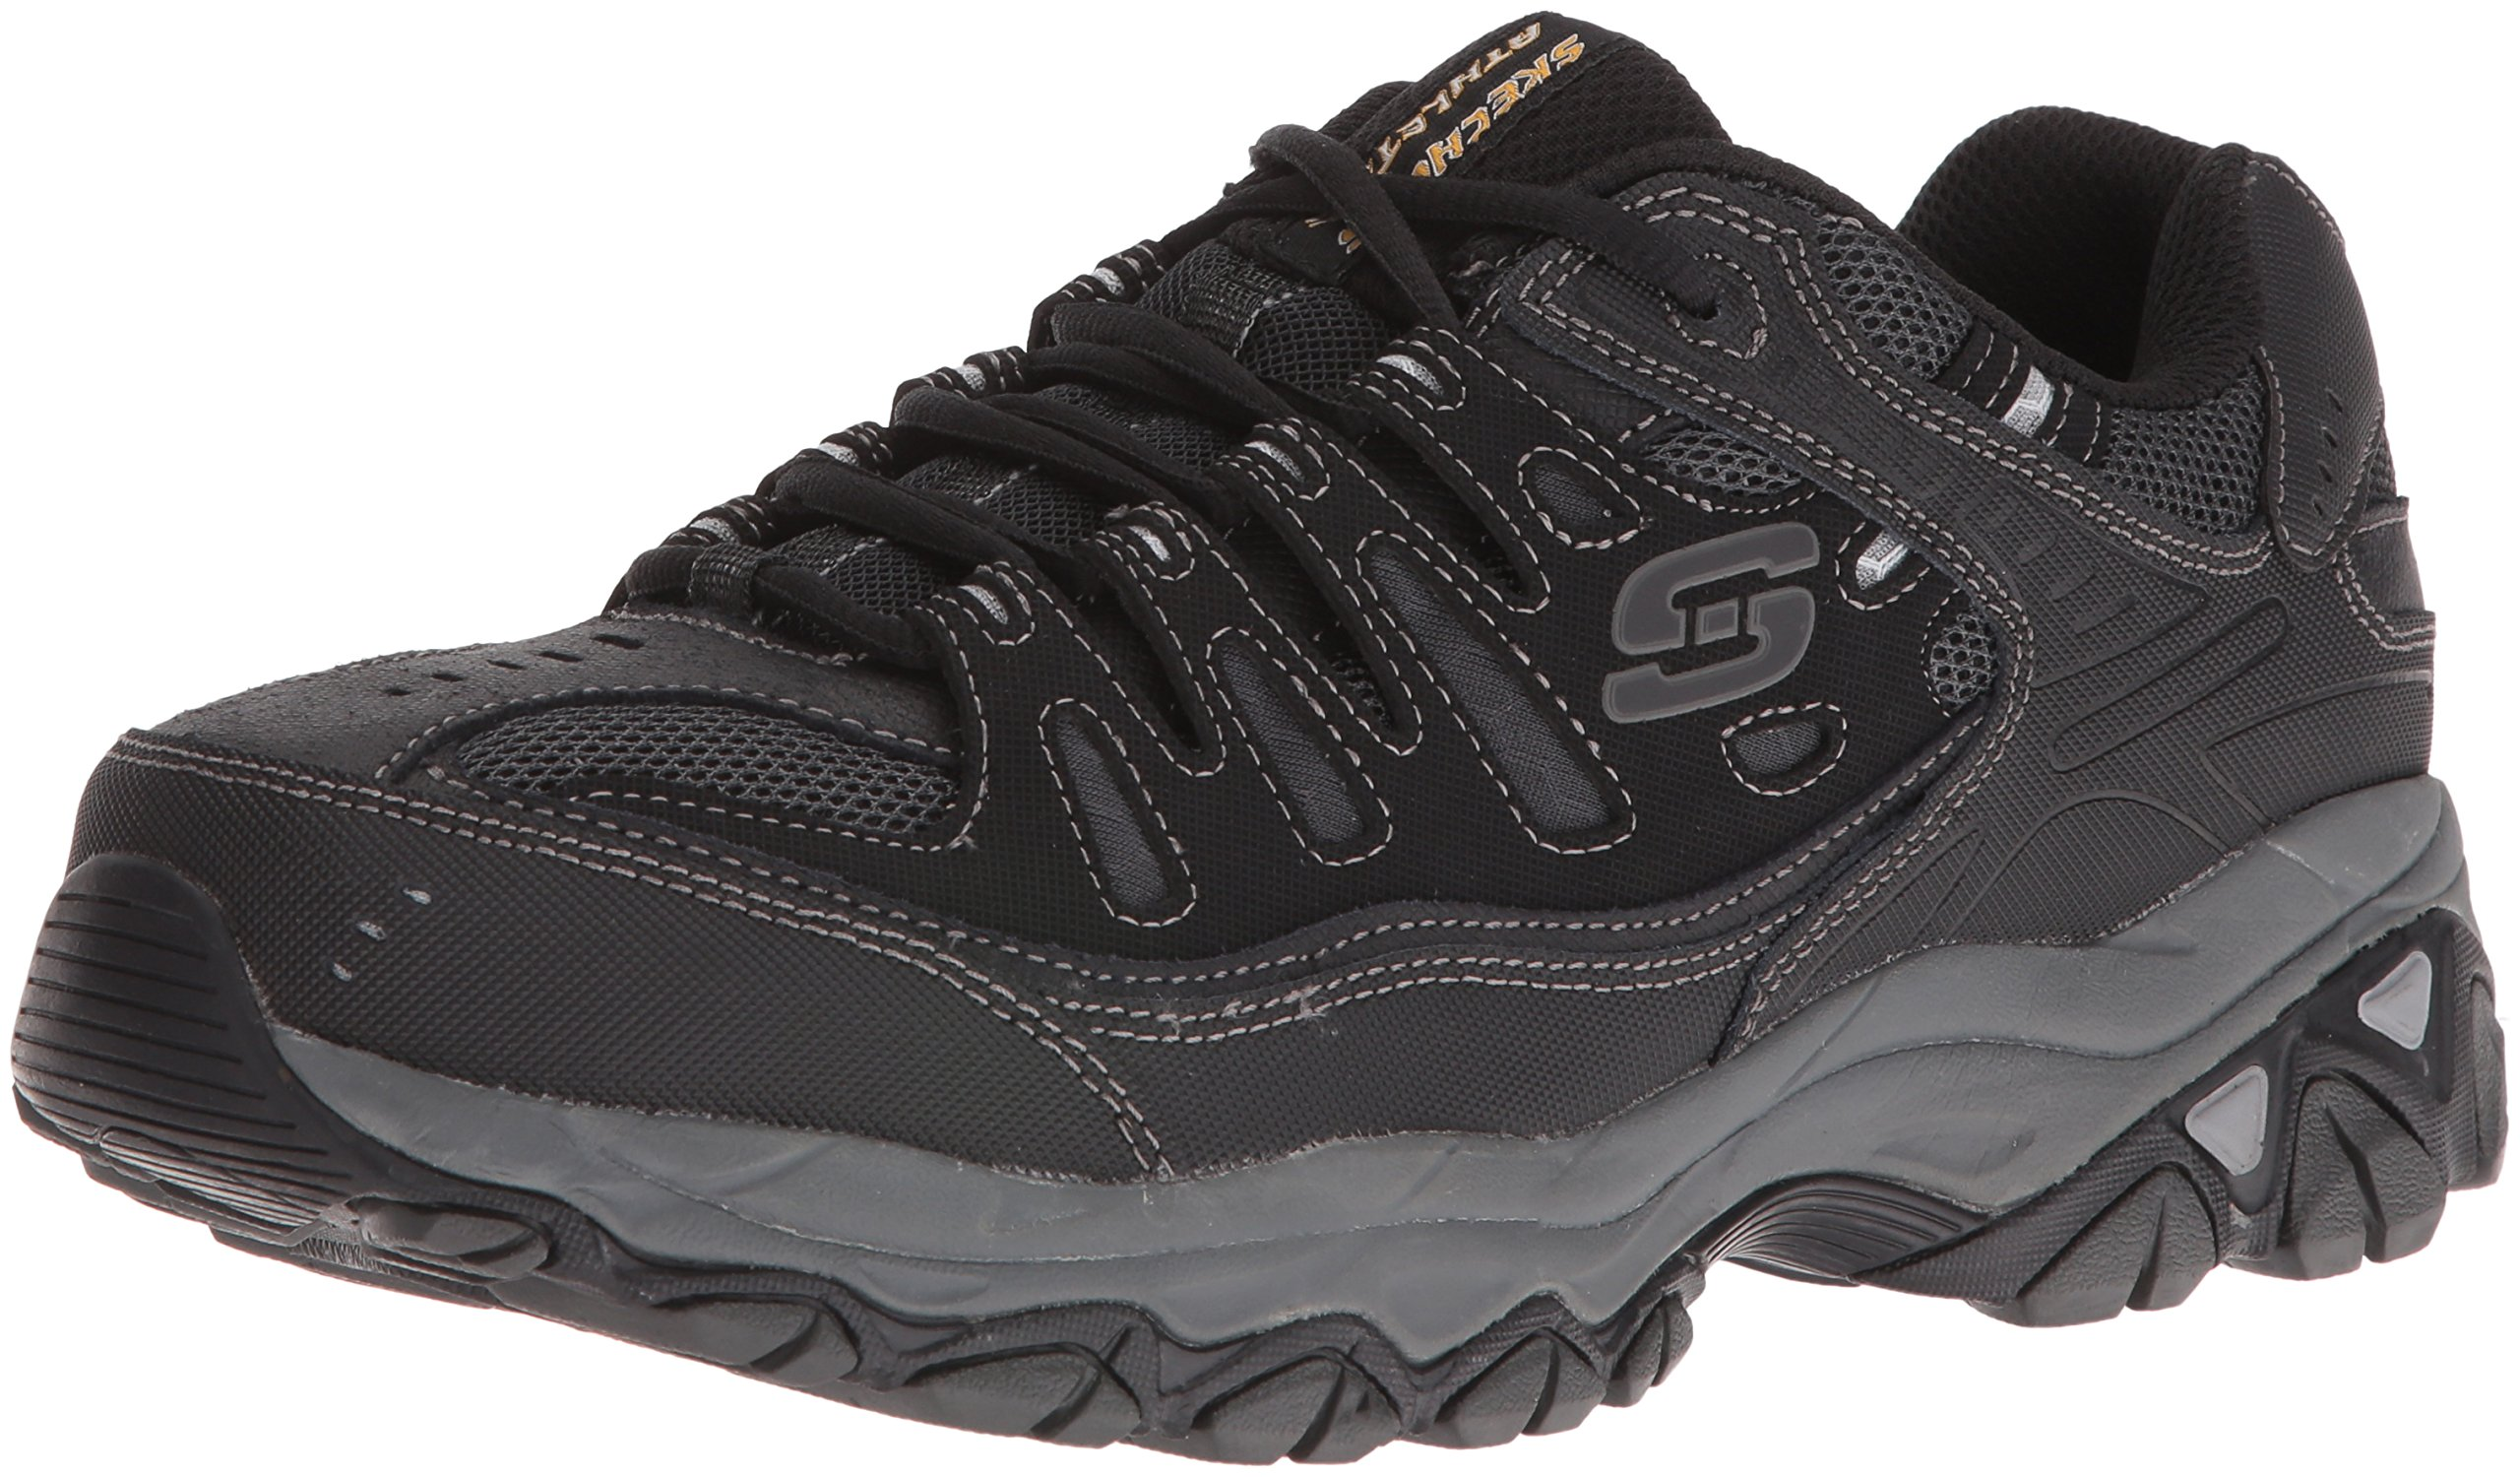 Skechers Men's AFTER BURN M.FIT Memory Foam Lace-Up Sneaker, Black, 7.5 M US by Skechers (Image #1)